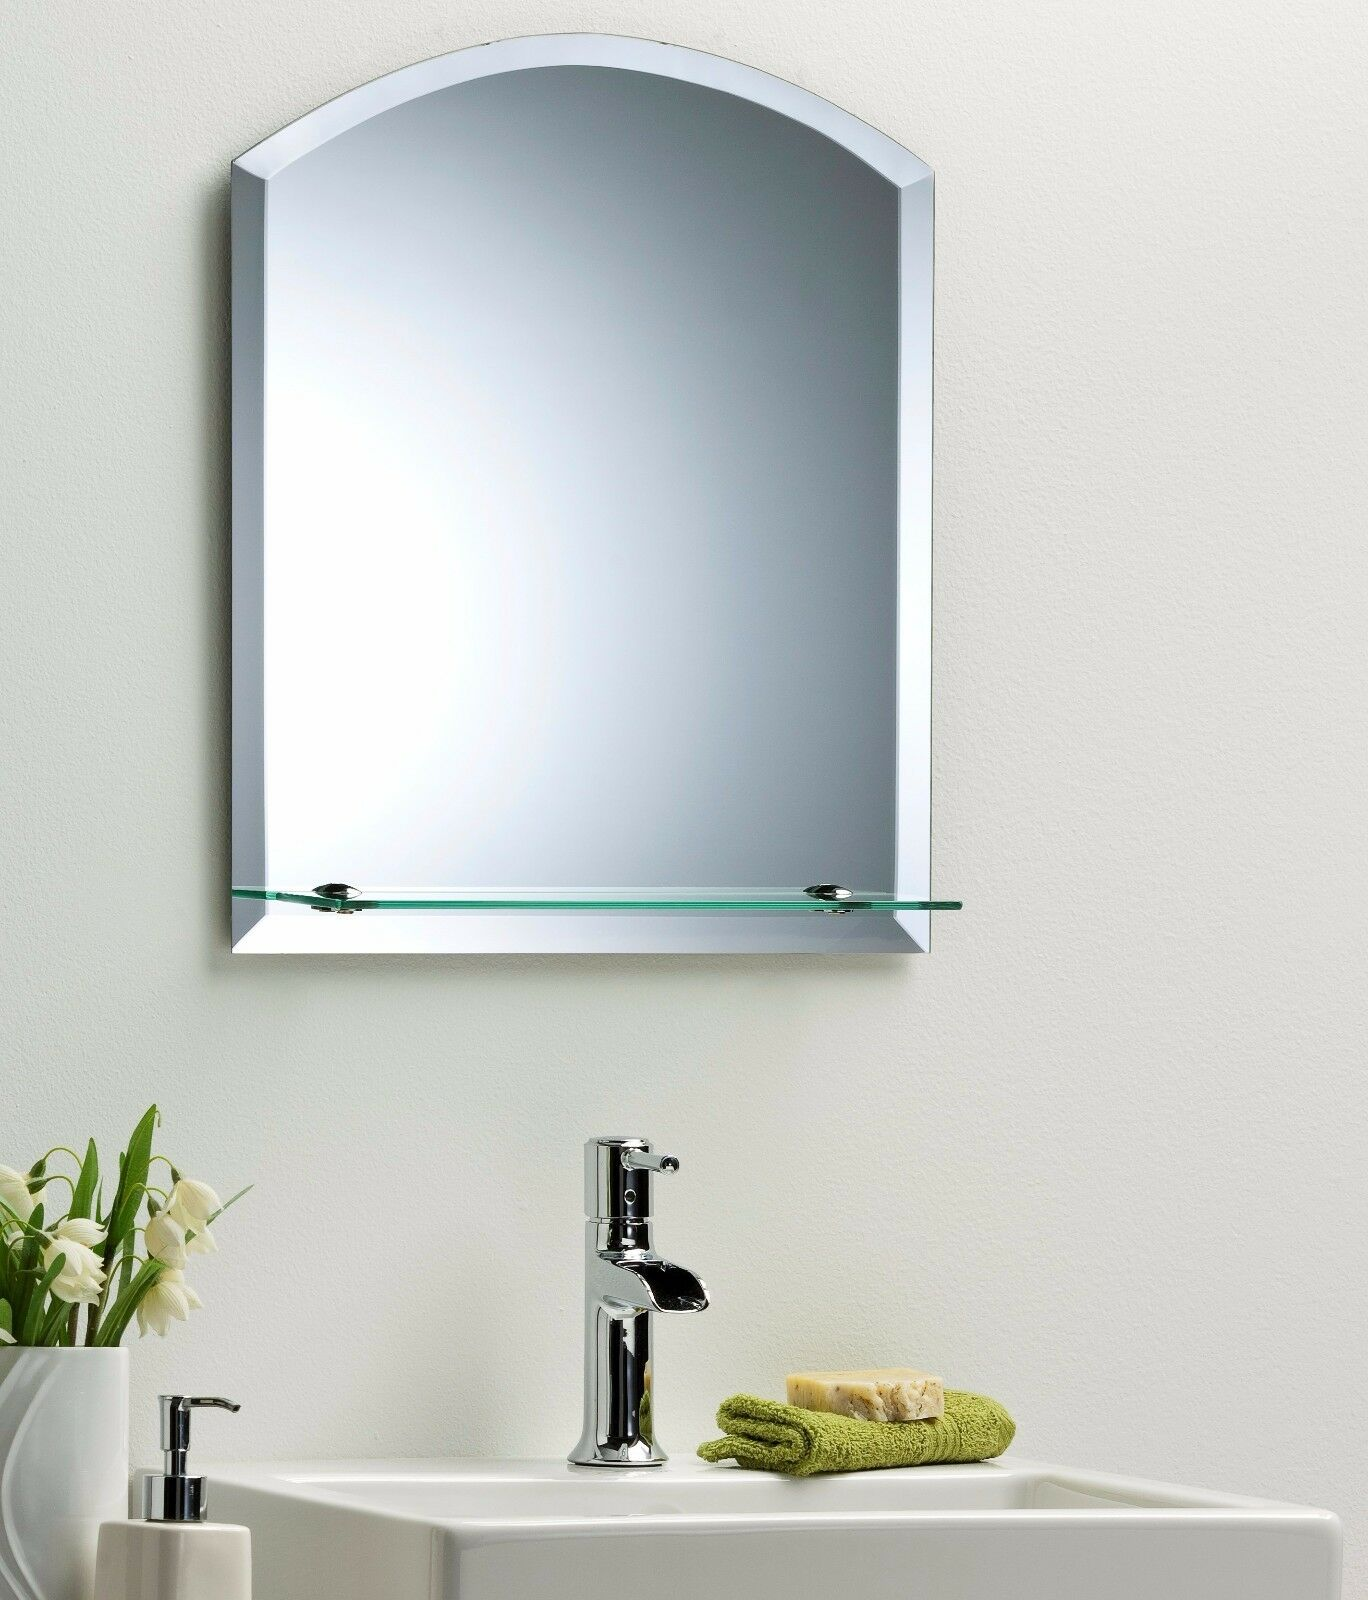 Bathroom wall mirror modern stylish arch with shelf and bevel frameless plain ebay Neue design bathroom mirror